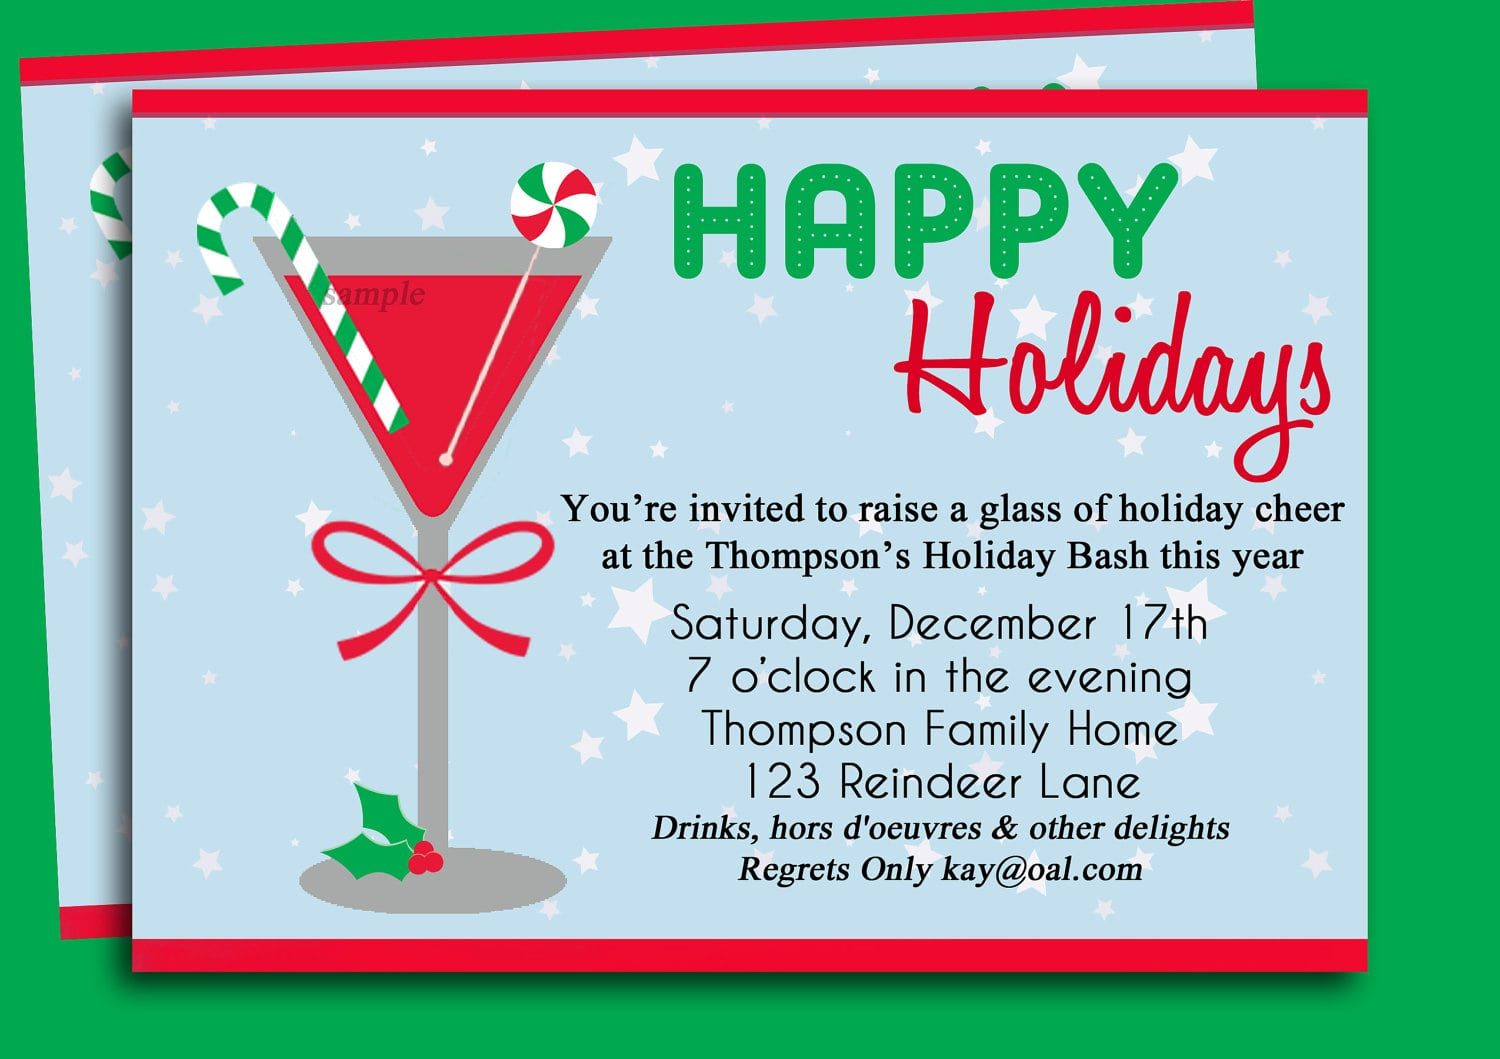 Best Holiday Office Party Invitation Templates Ideas   Invitation .  Company Party Invitation Templates